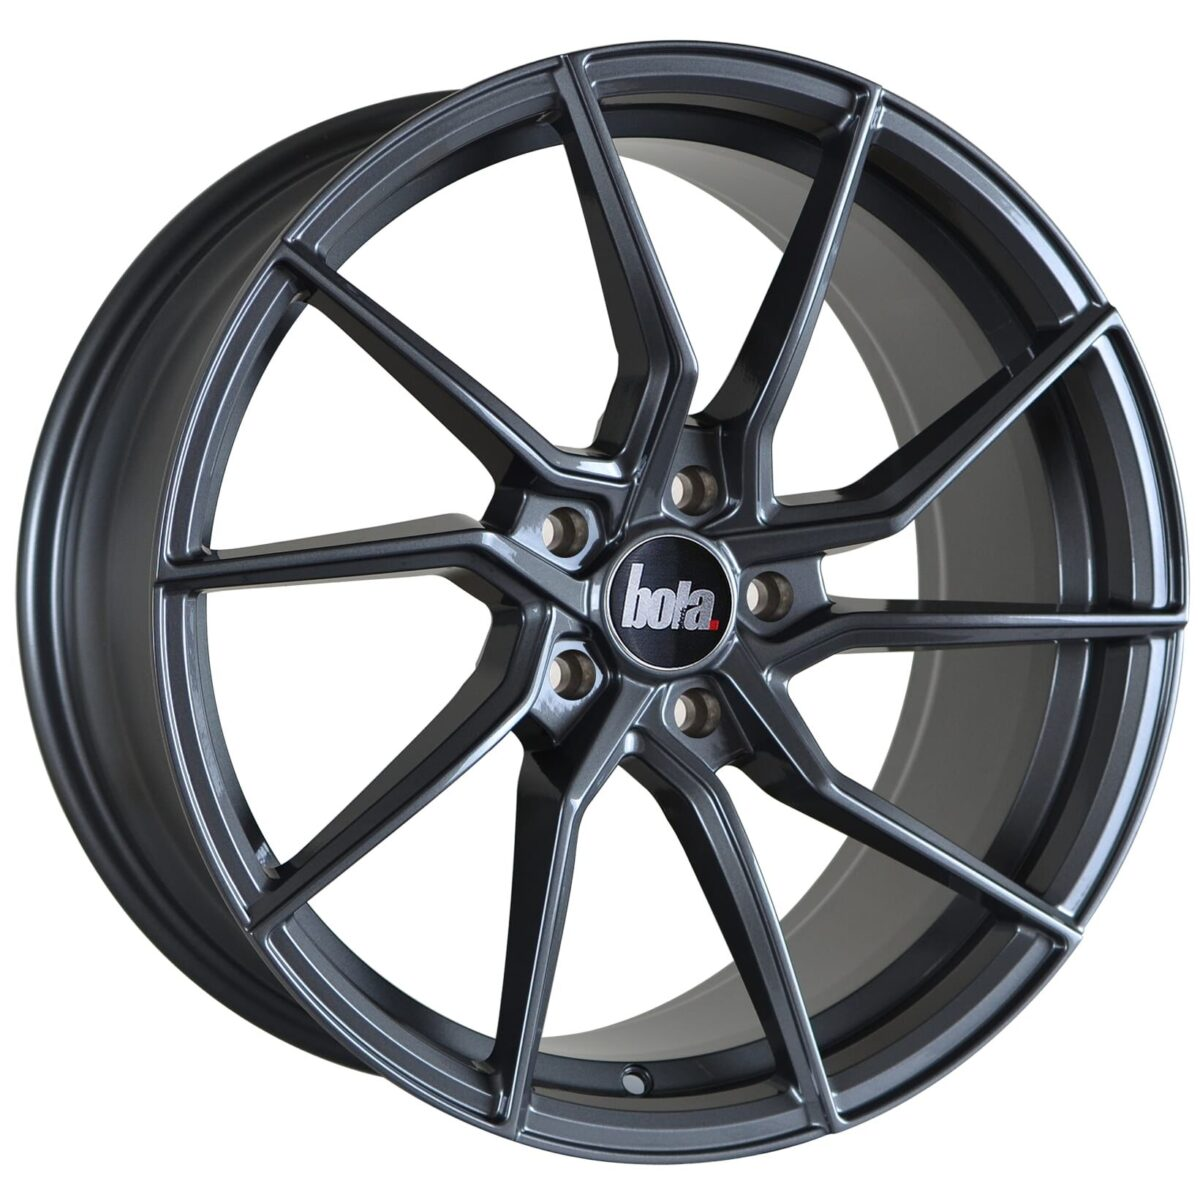 "19"" BOLA B25 Wheels - Gloss Gunmetal - All BMW Models"